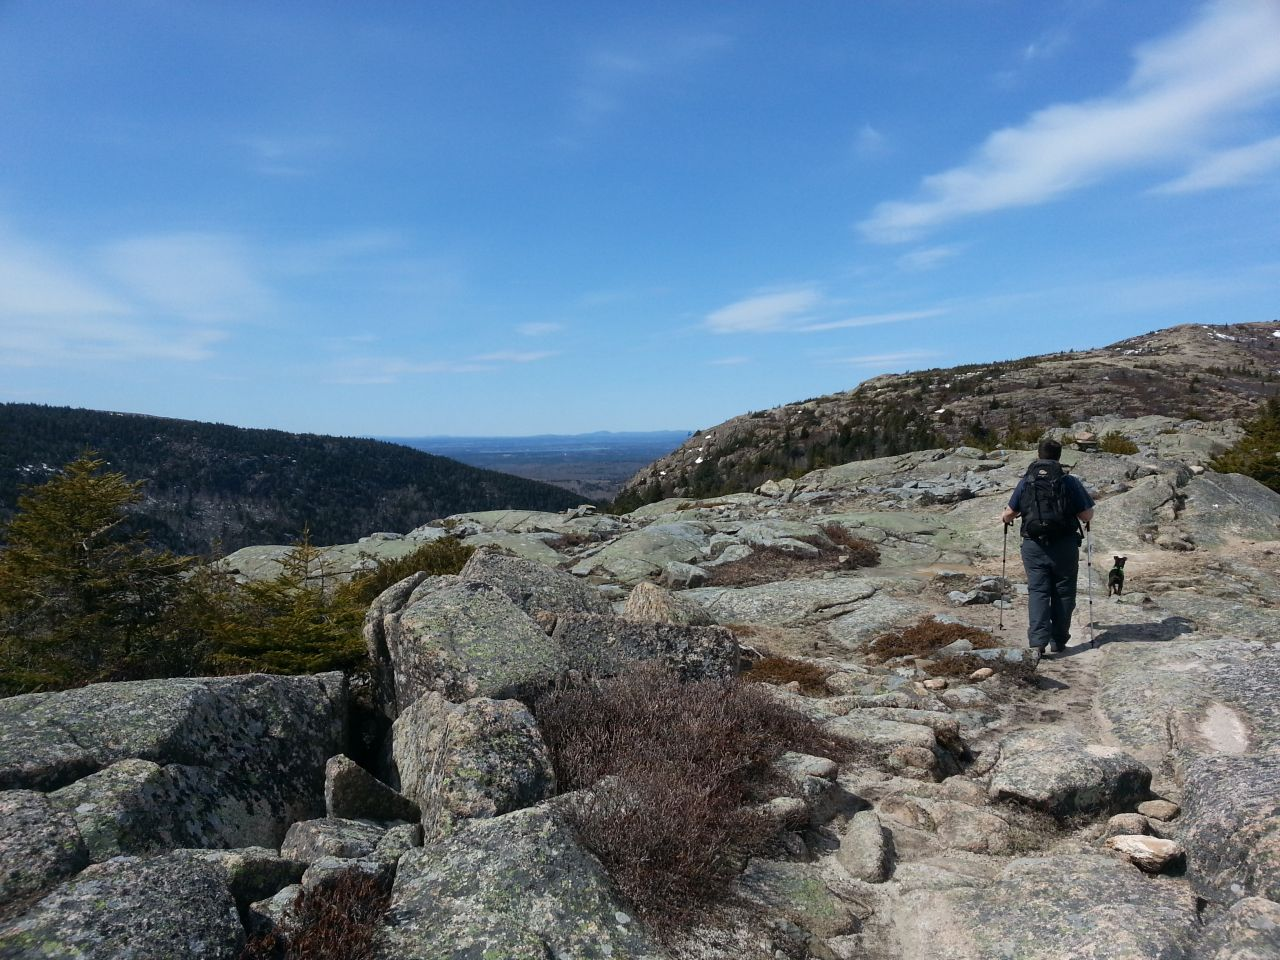 Acadia - Cadillac Mountain, South Ridge Trail